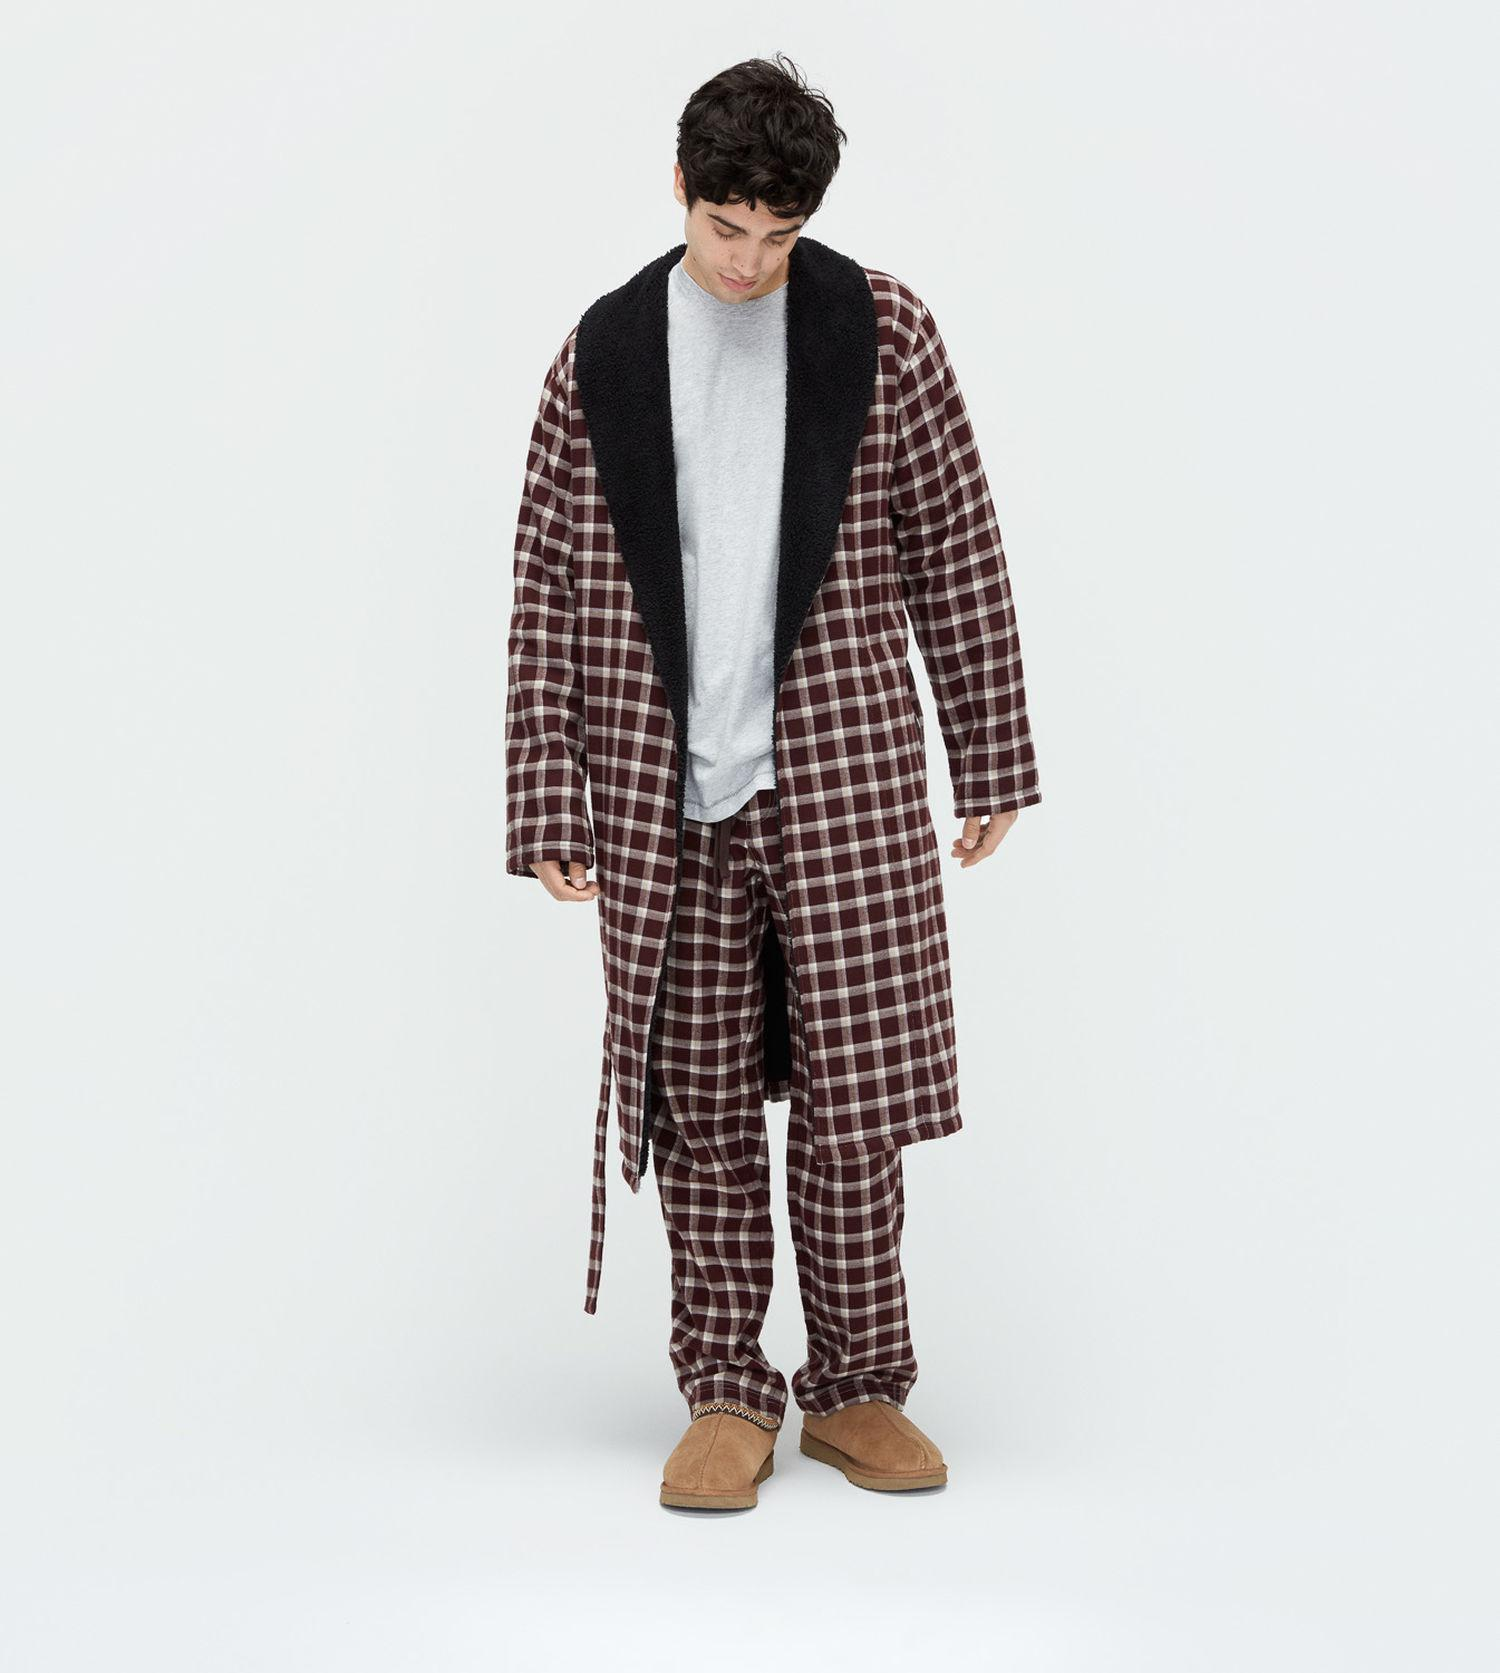 bde08f18df Lyst - Ugg Men s Kalib Plaid Robe for Men